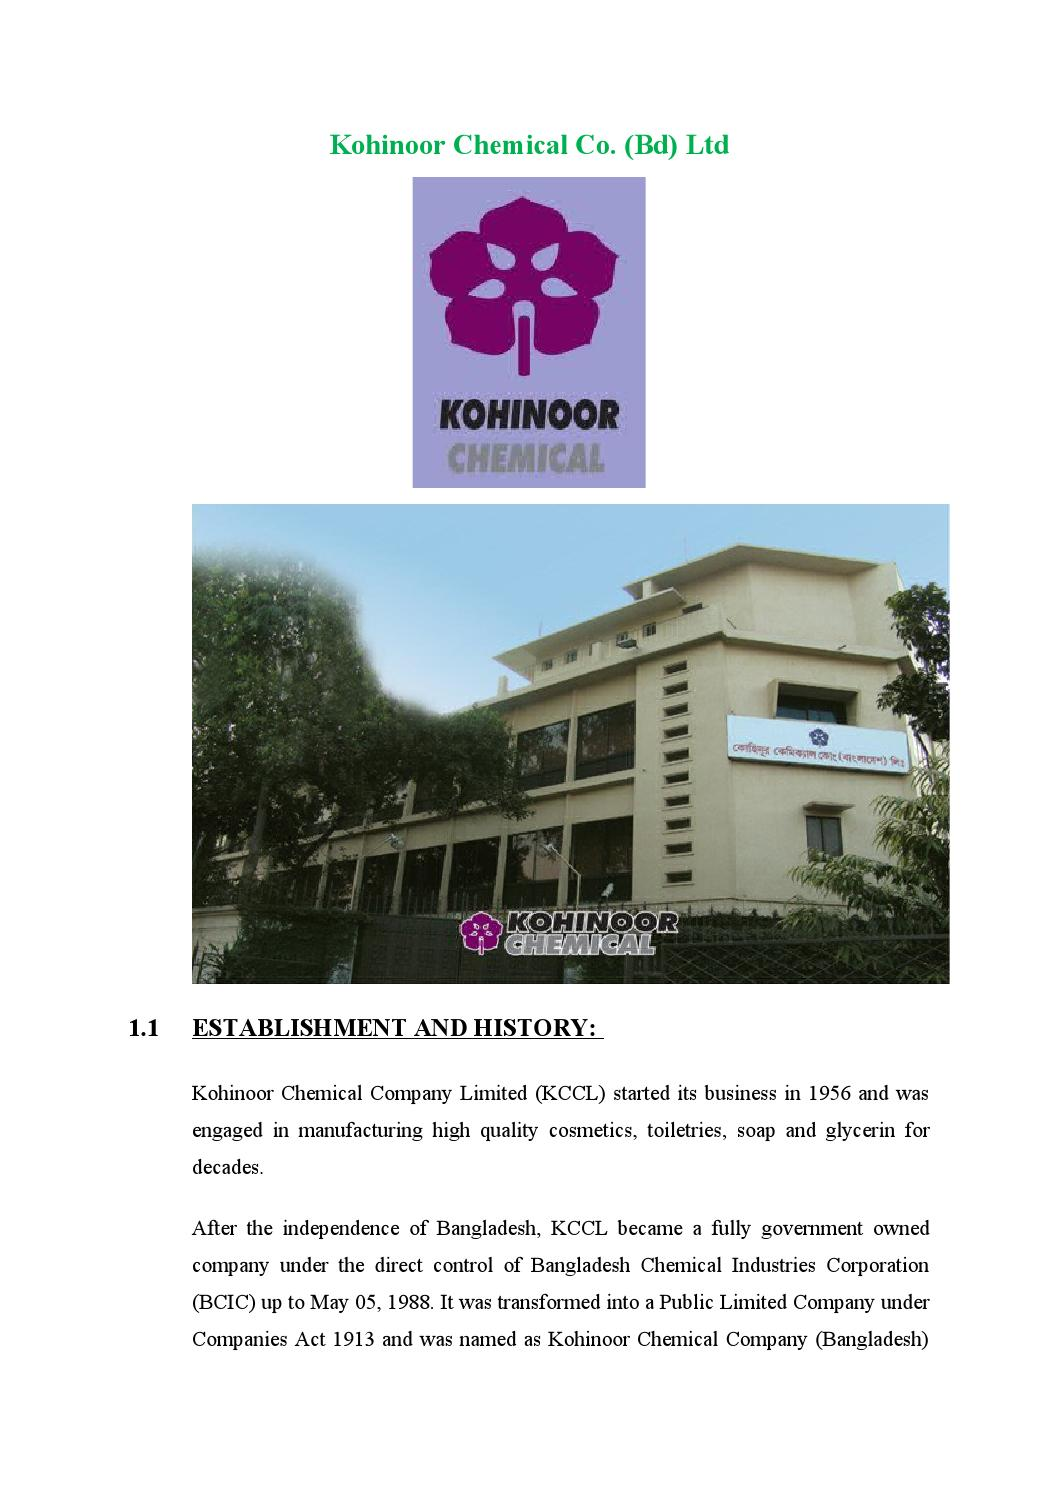 kohinoor chemical co bd ltd • the government of the people republic of bangladesh has vested the company's 51% shares to bangladesh chemical industries corporationintroduction • kohinoor chemical company limited (kccl) was a fully government owned industry.